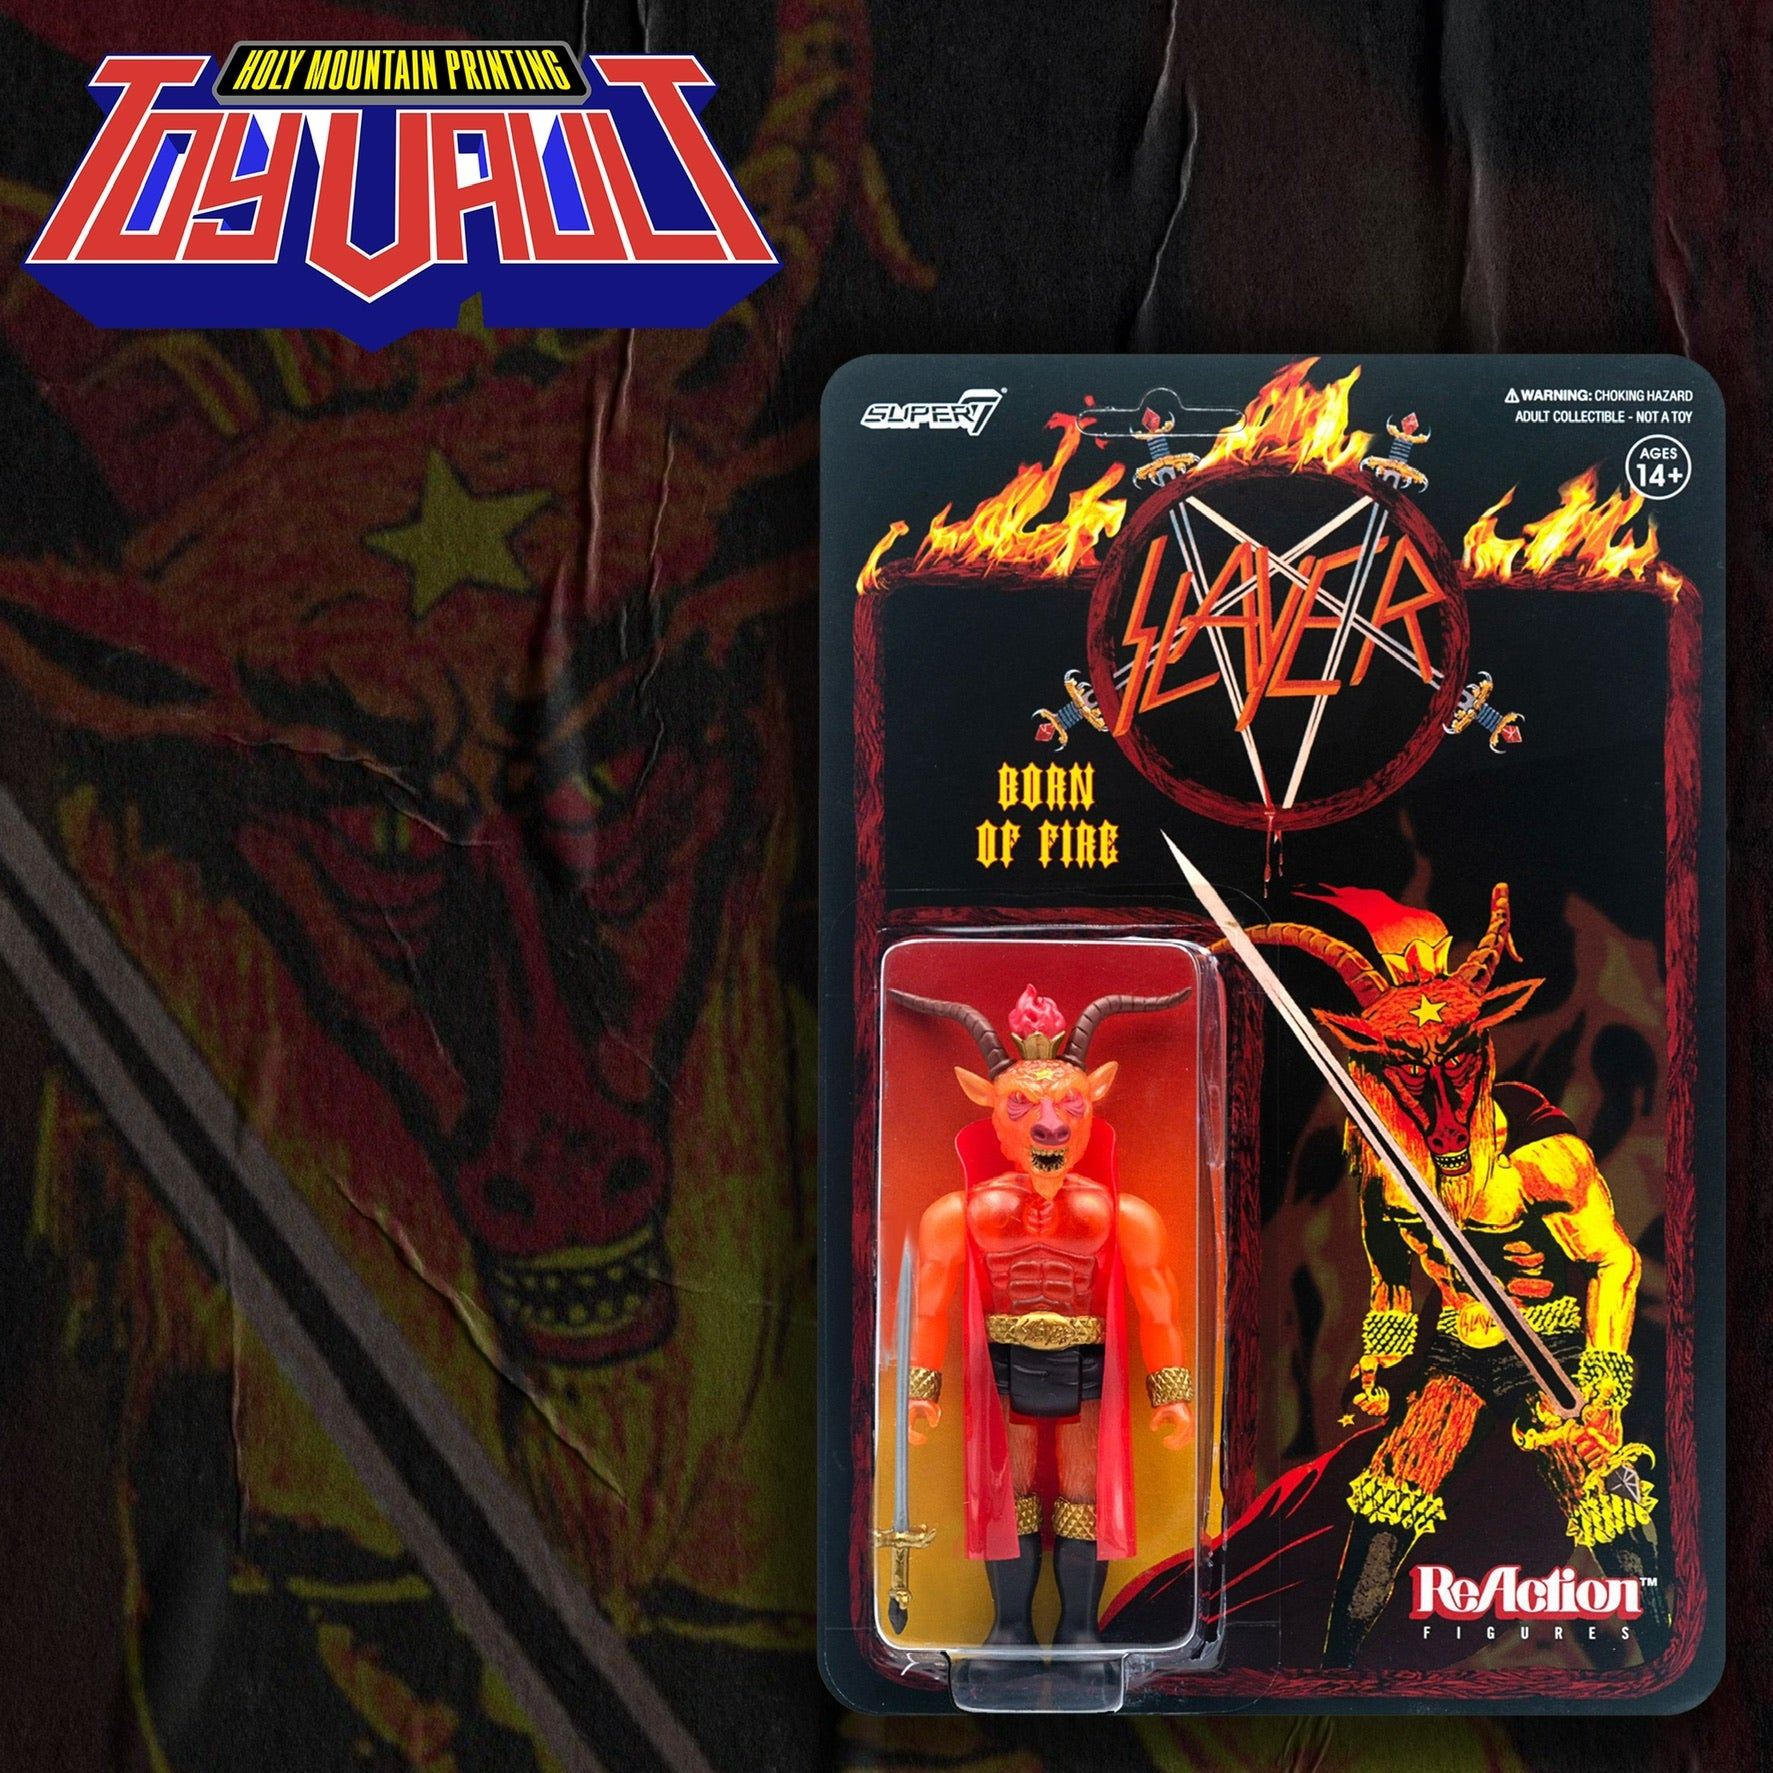 SUPER7 - SLAYER MINOTAUR REACTION - BORN OF FIRE